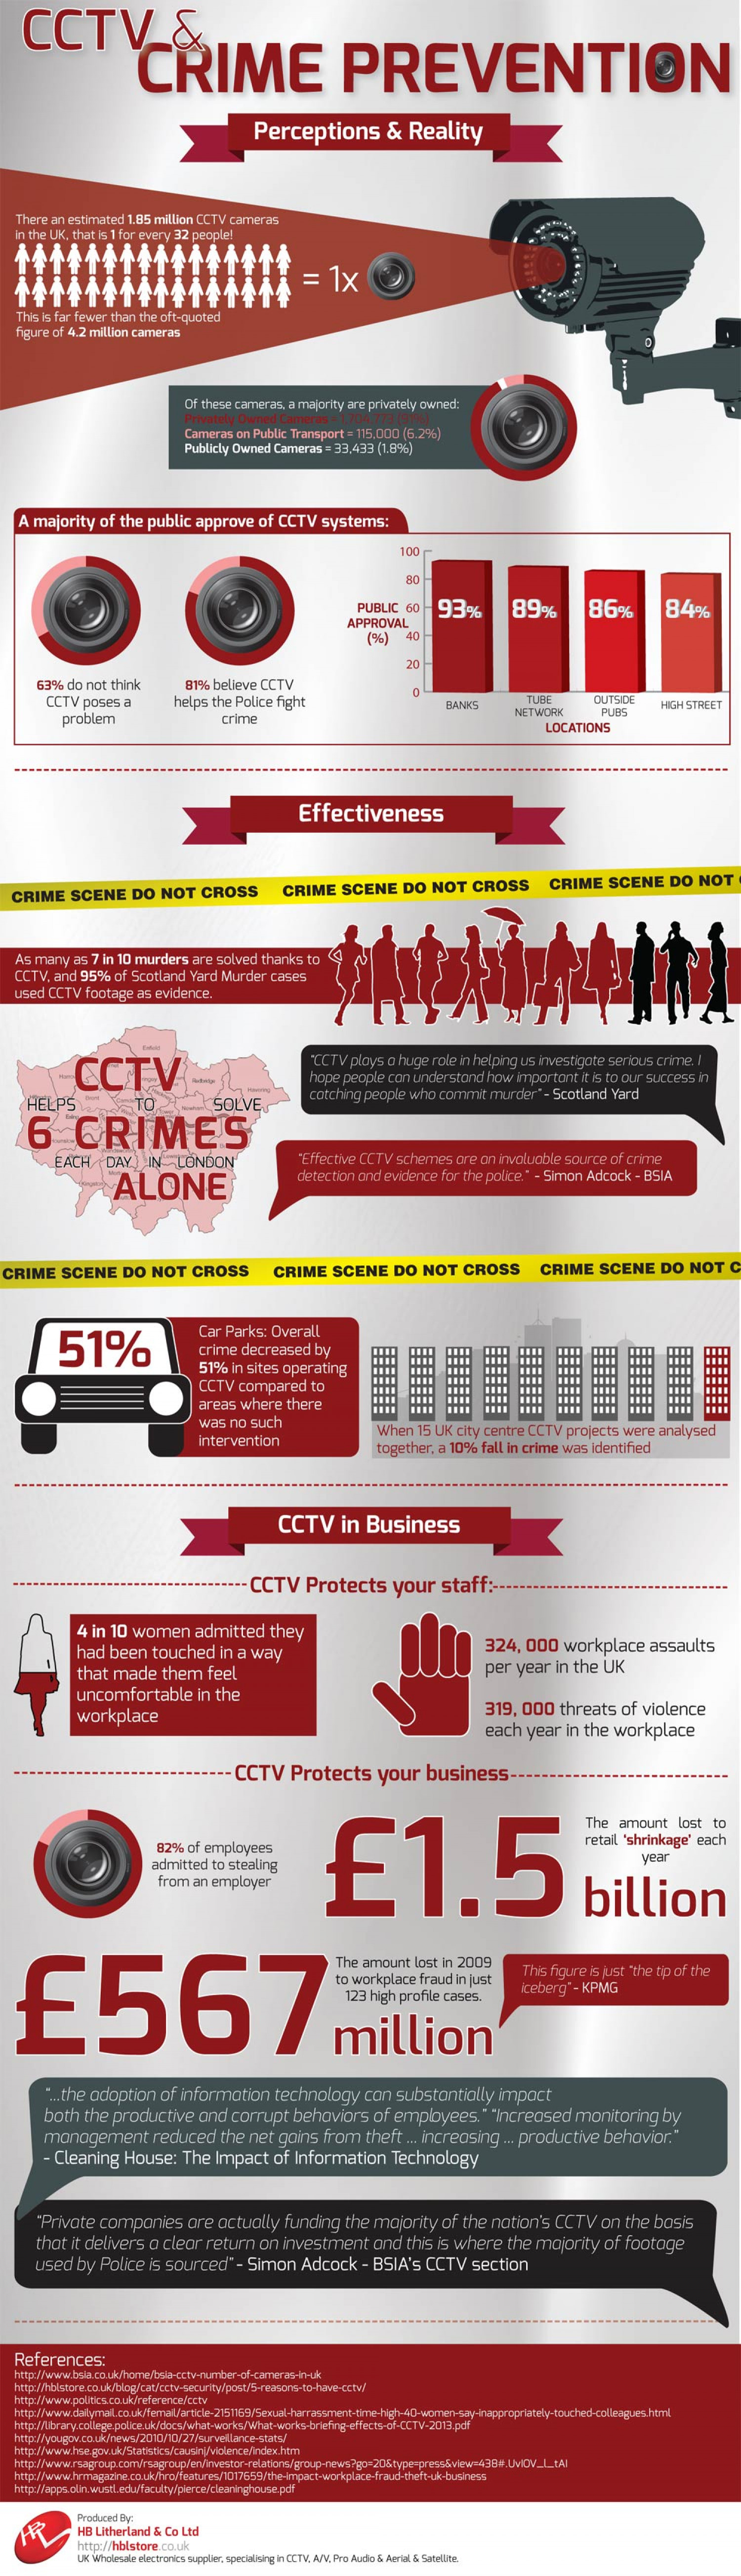 CCTV & Crime Prevention Infographic